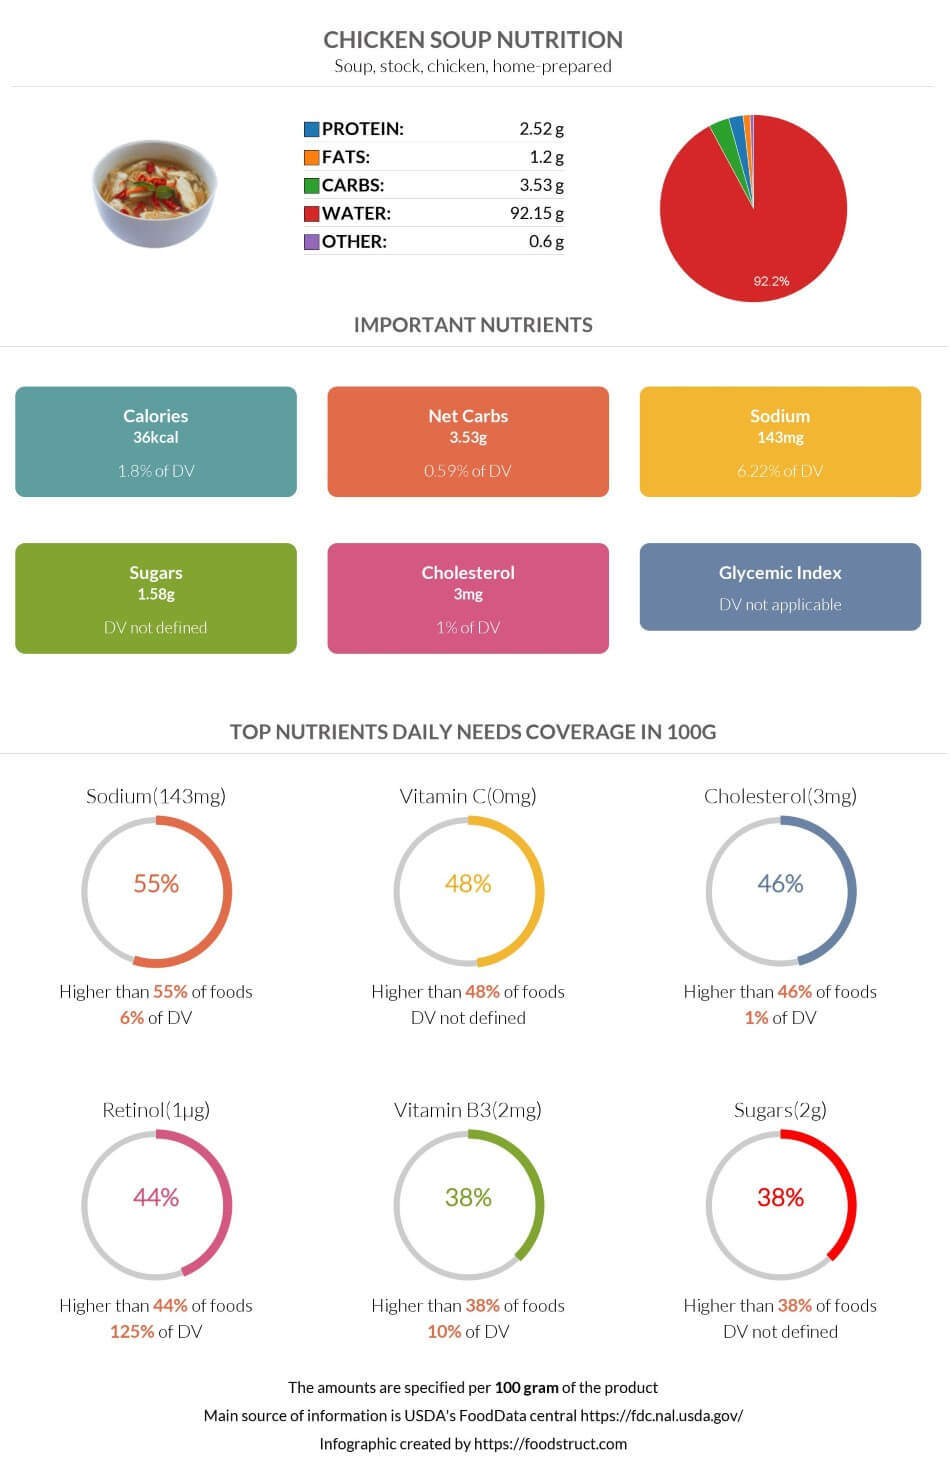 Chicken soup nutrition infographic